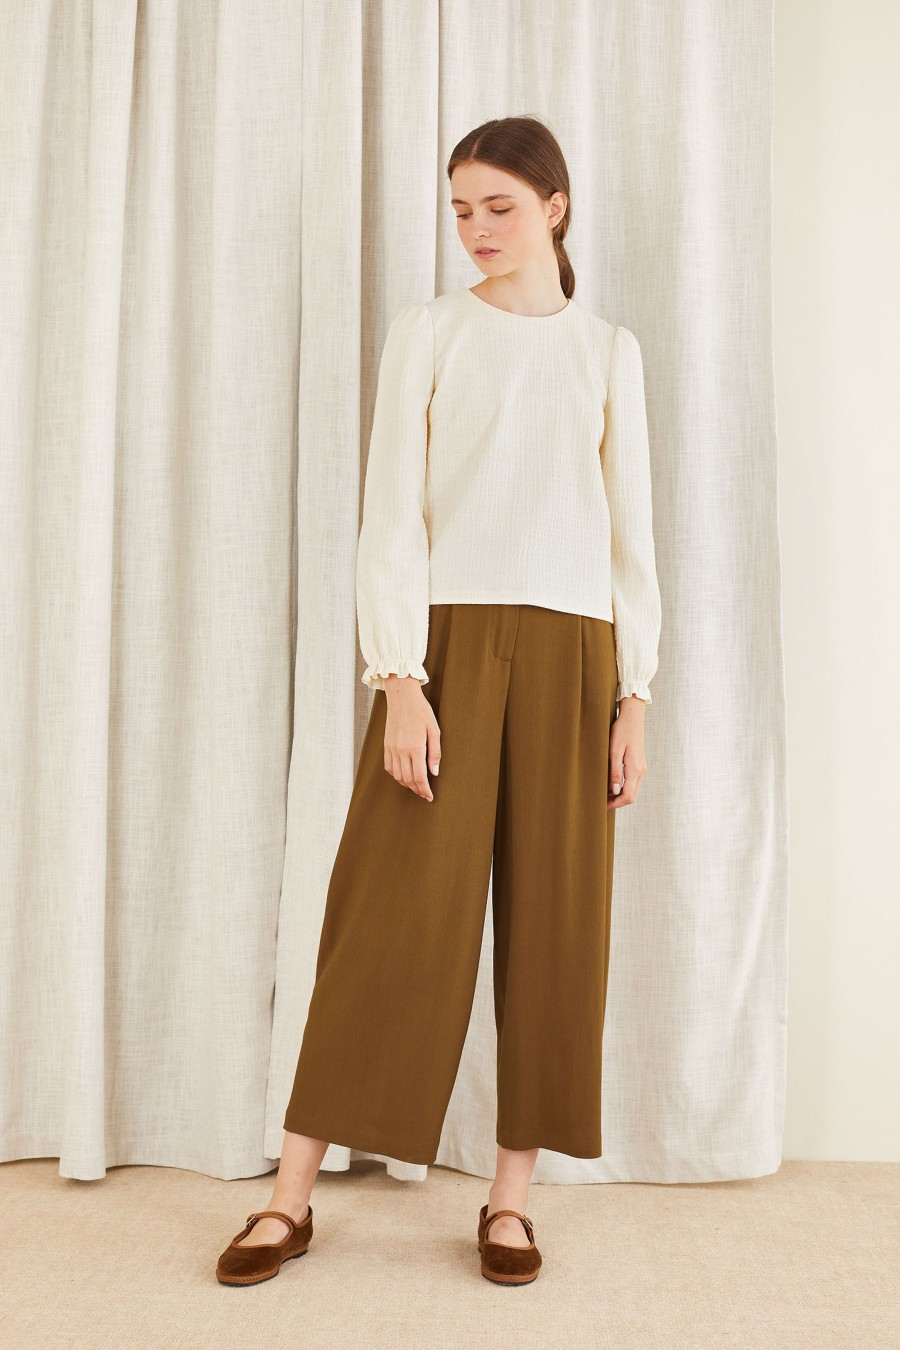 comfortable and versatile egg-shaped trousers